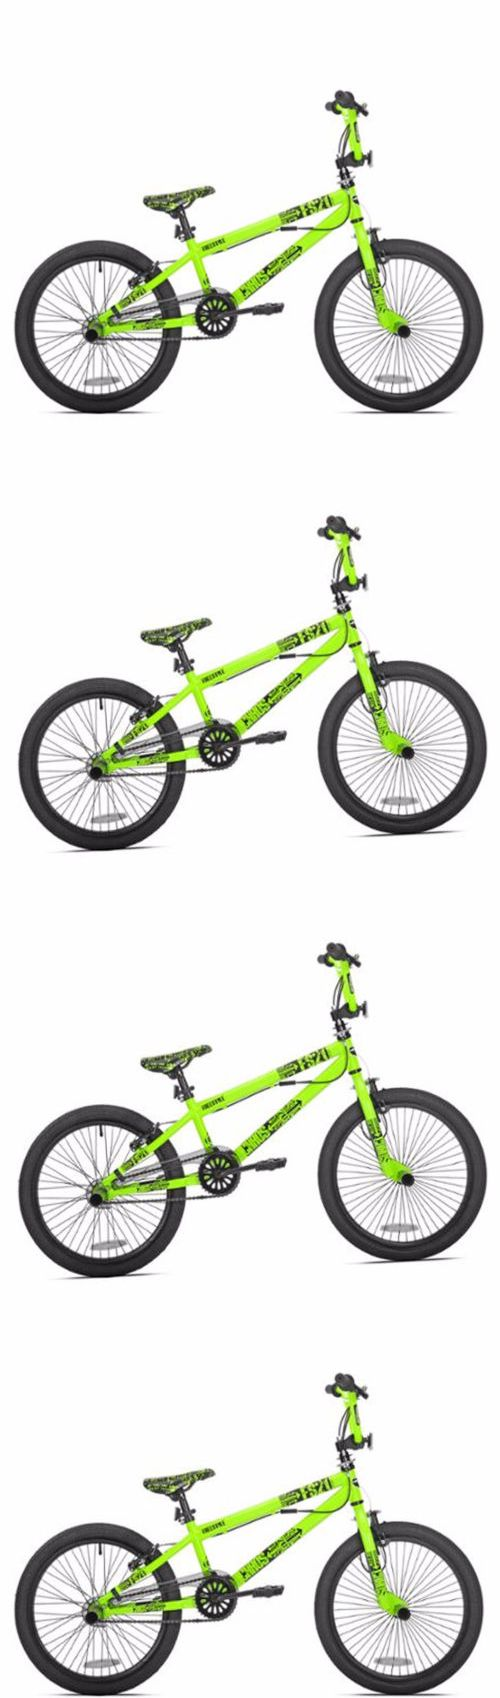 bicycles: 20 Boys Bmx Neon Green Bike Single Speed Bicycle Steel Frame Freestyle Ride BUY IT NOW ONLY: $92.82